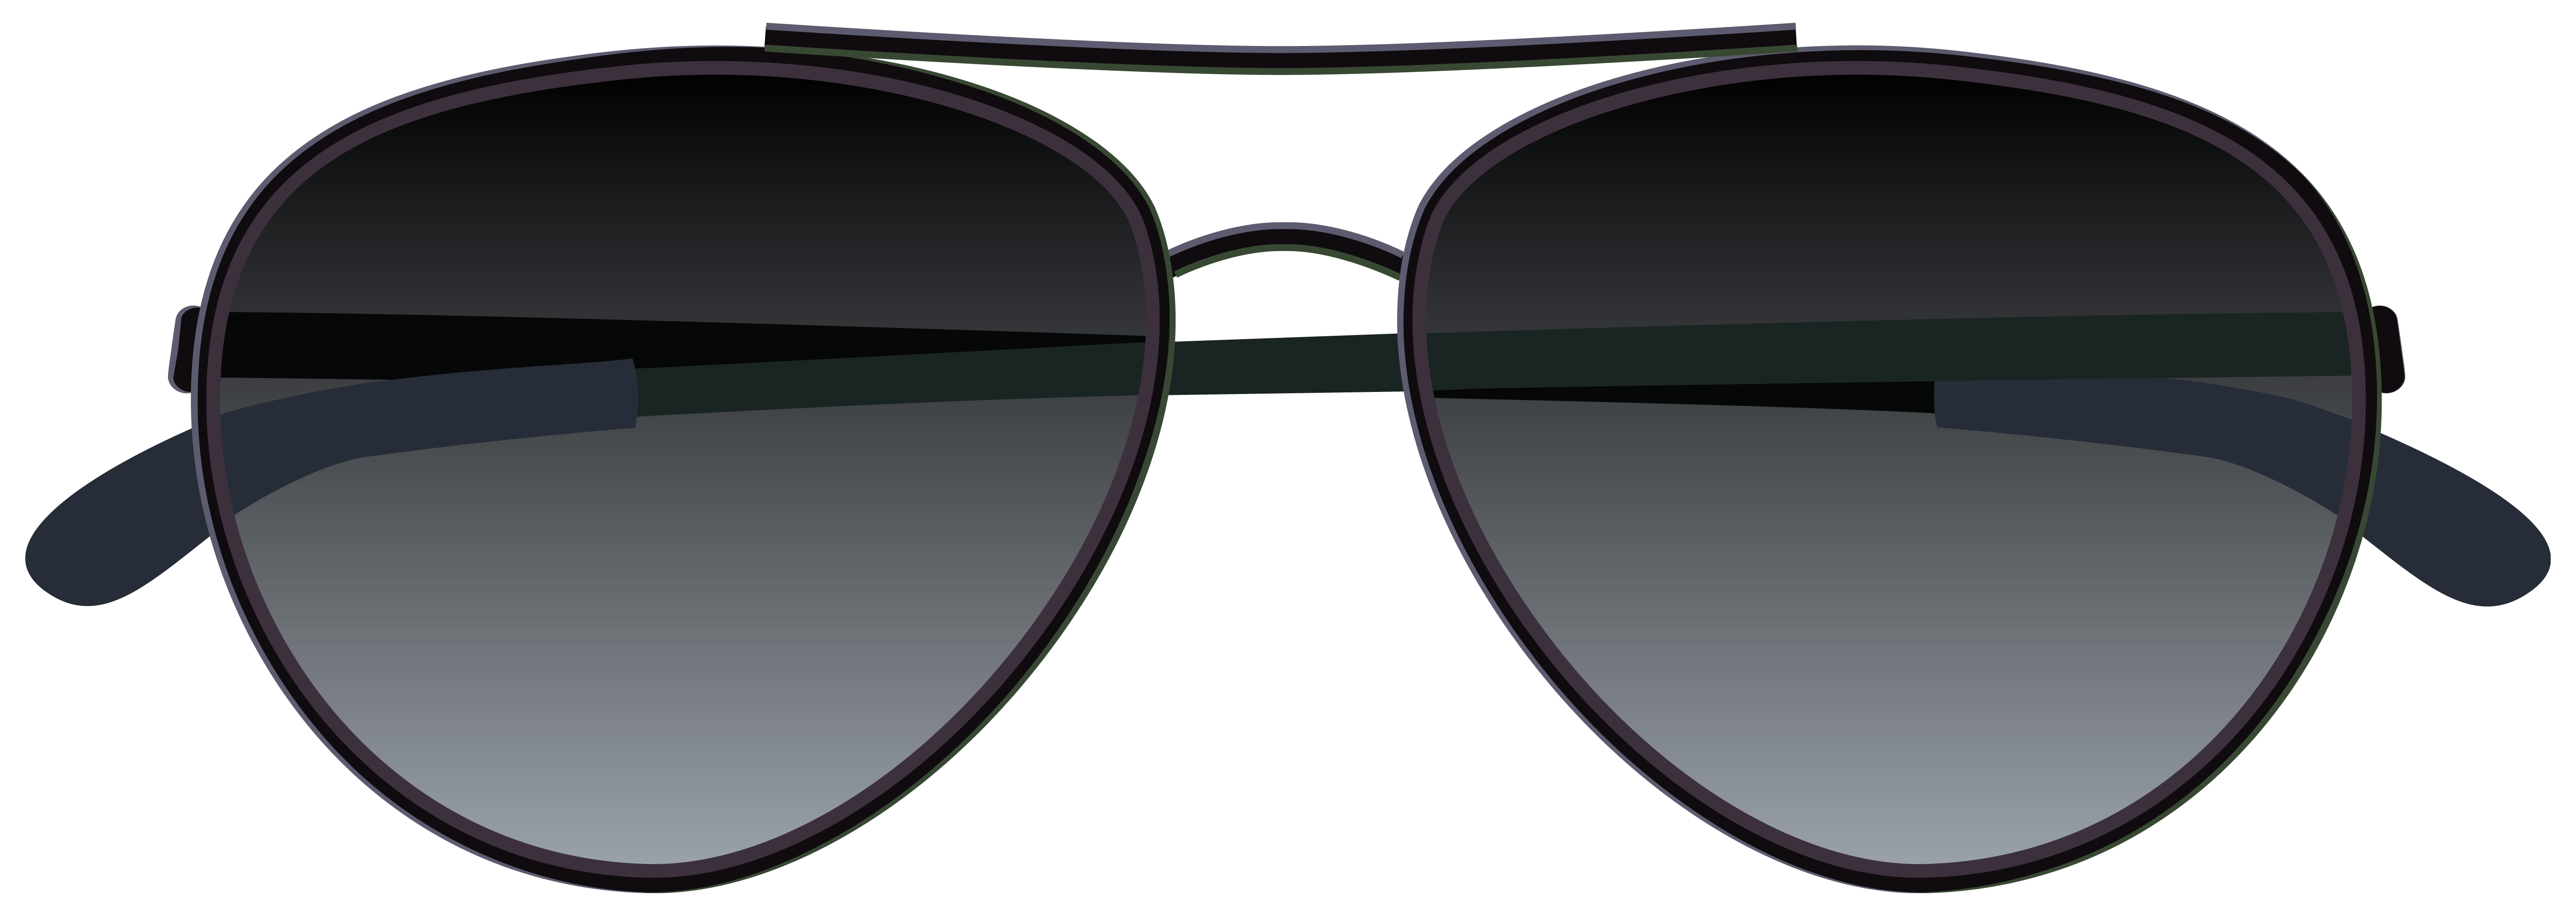 Ray Ban clipart Images Flora Reading Martha clipart